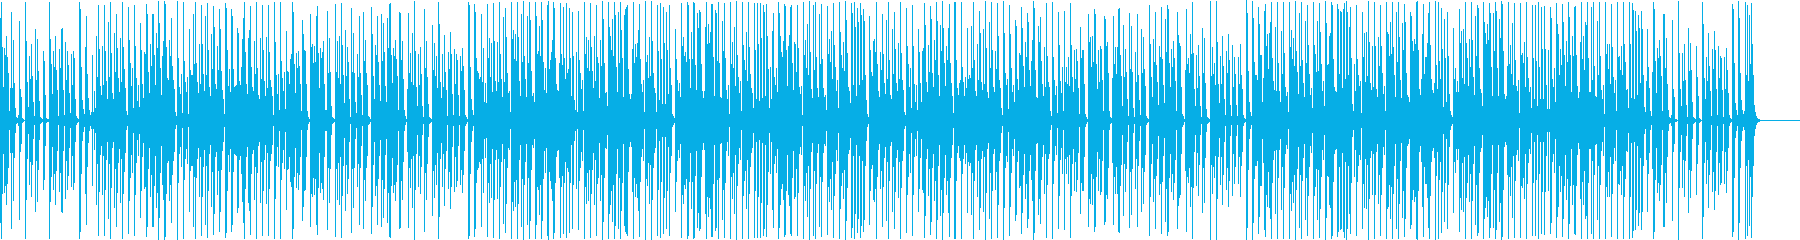 BGM that recorder is fun and cute's reproduced waveform